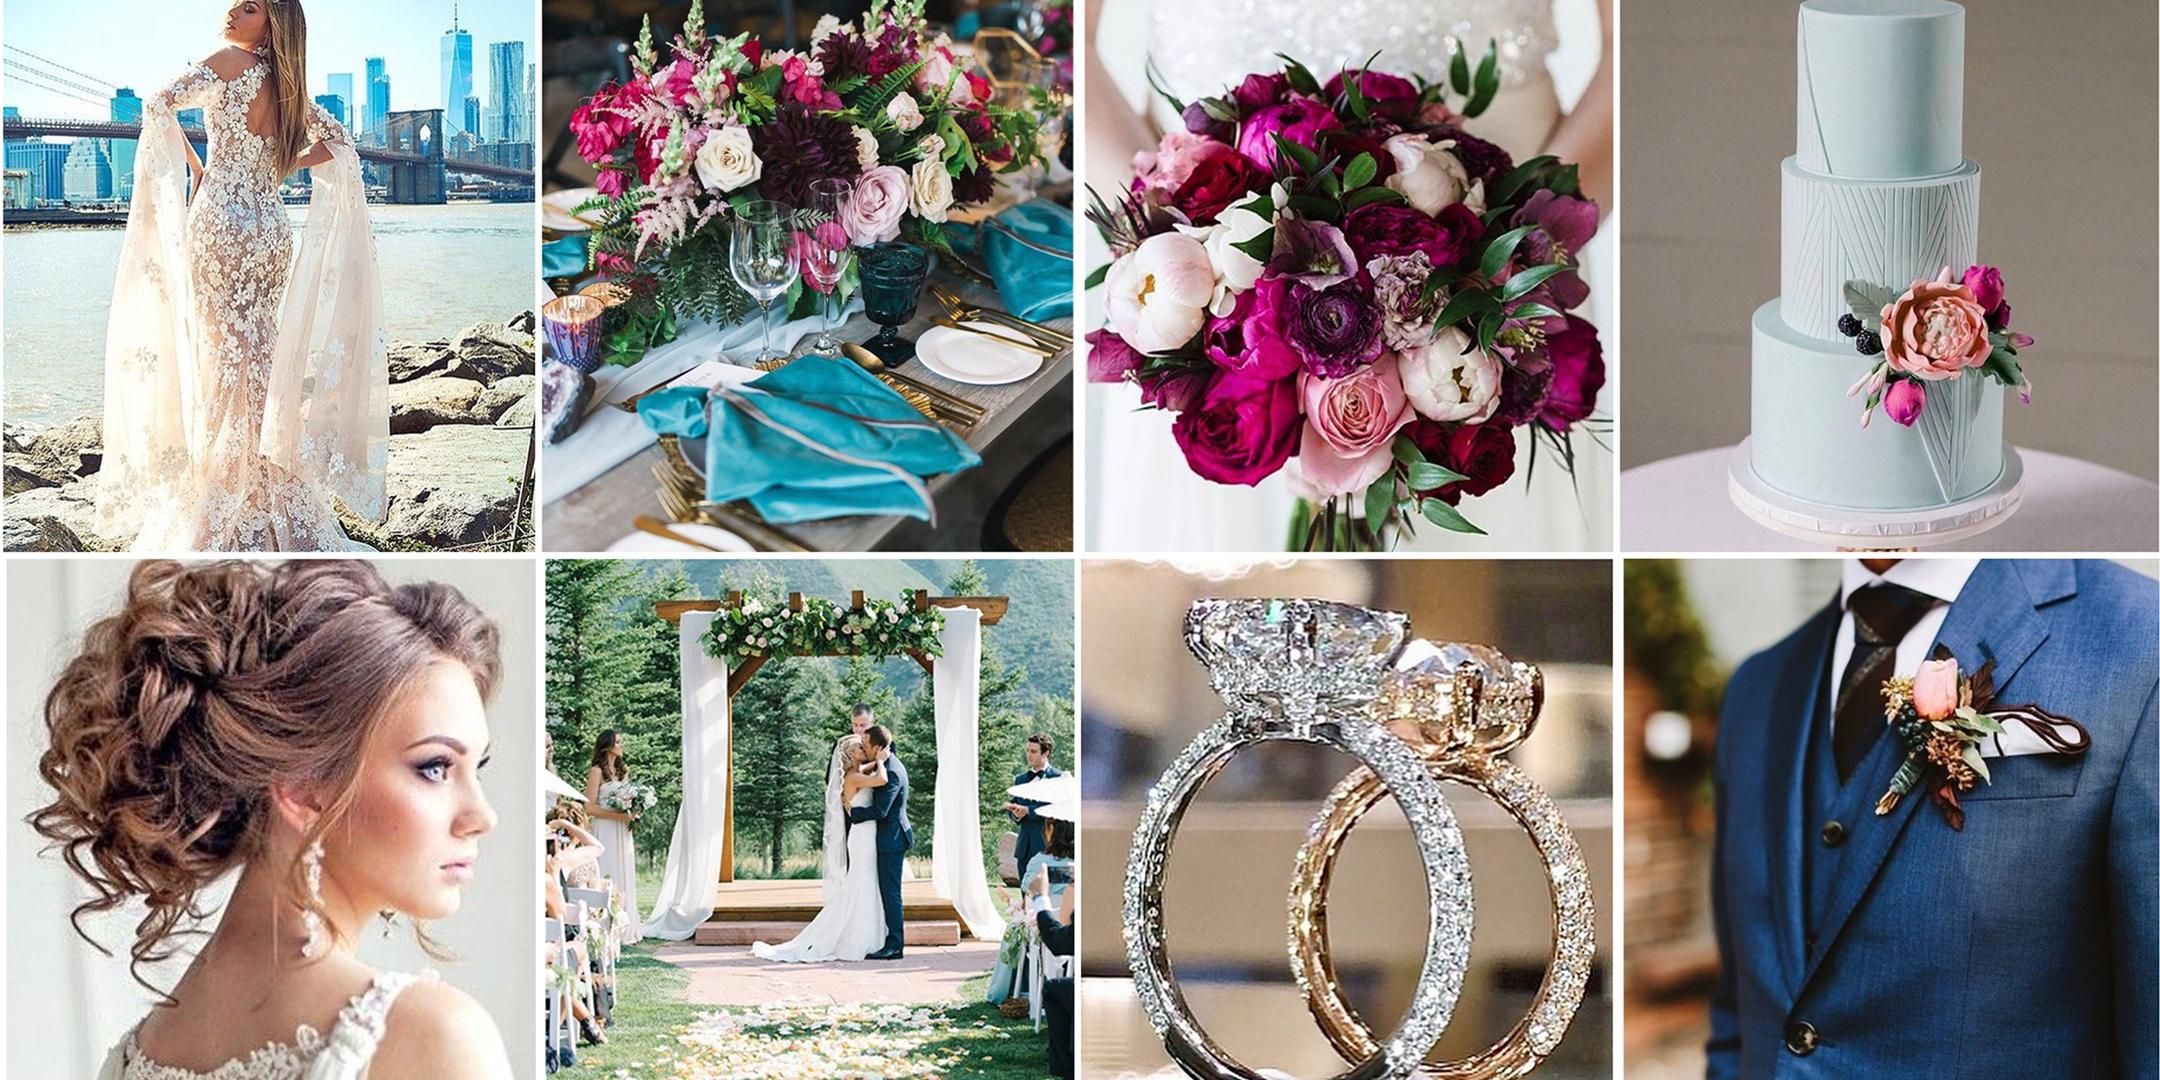 Bridal Expo Chicago June 3rd, DoubleTree Hotel, Oak Brook, IL-Postponed